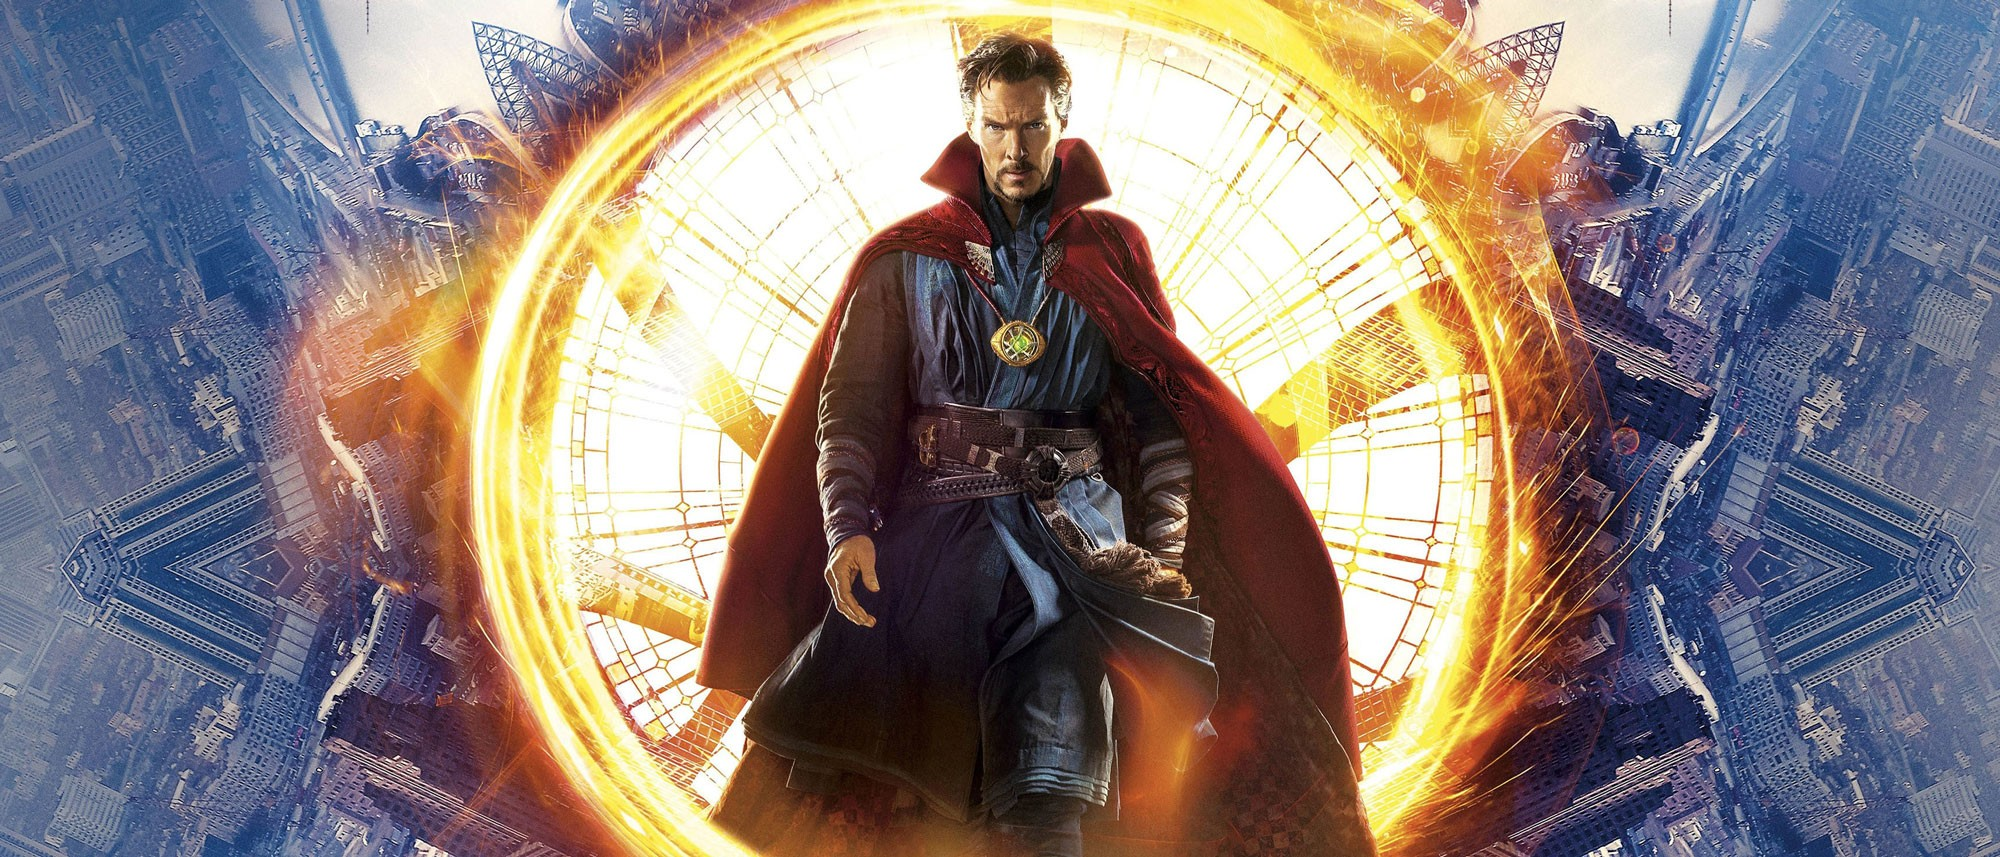 Doctor-Strange-In-The-Multiverse-Of-Madness-Doctor-Strange-2 Scott Derrickson Sam Raimi